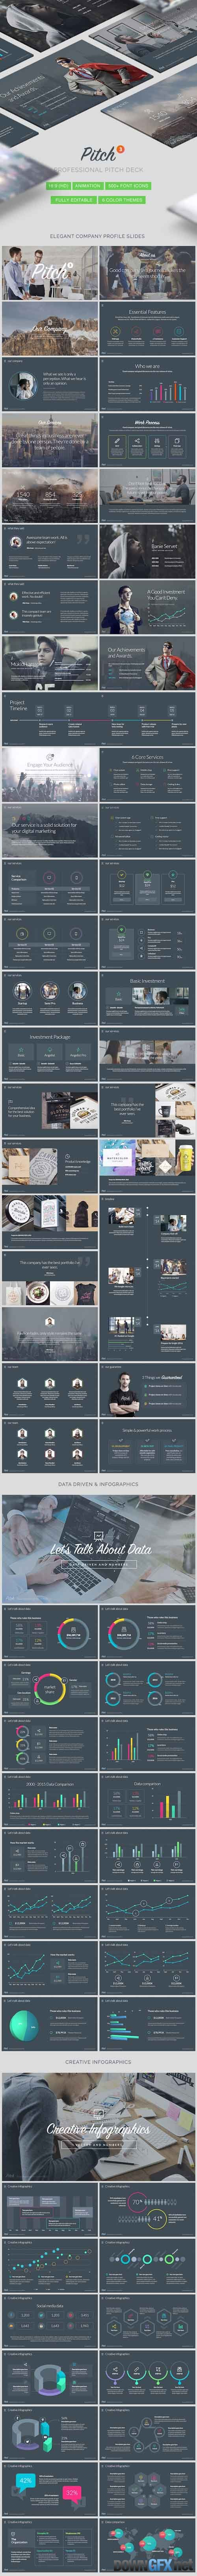 Pitch 3 - Professional Pitch Deck Keynote Template 20321974